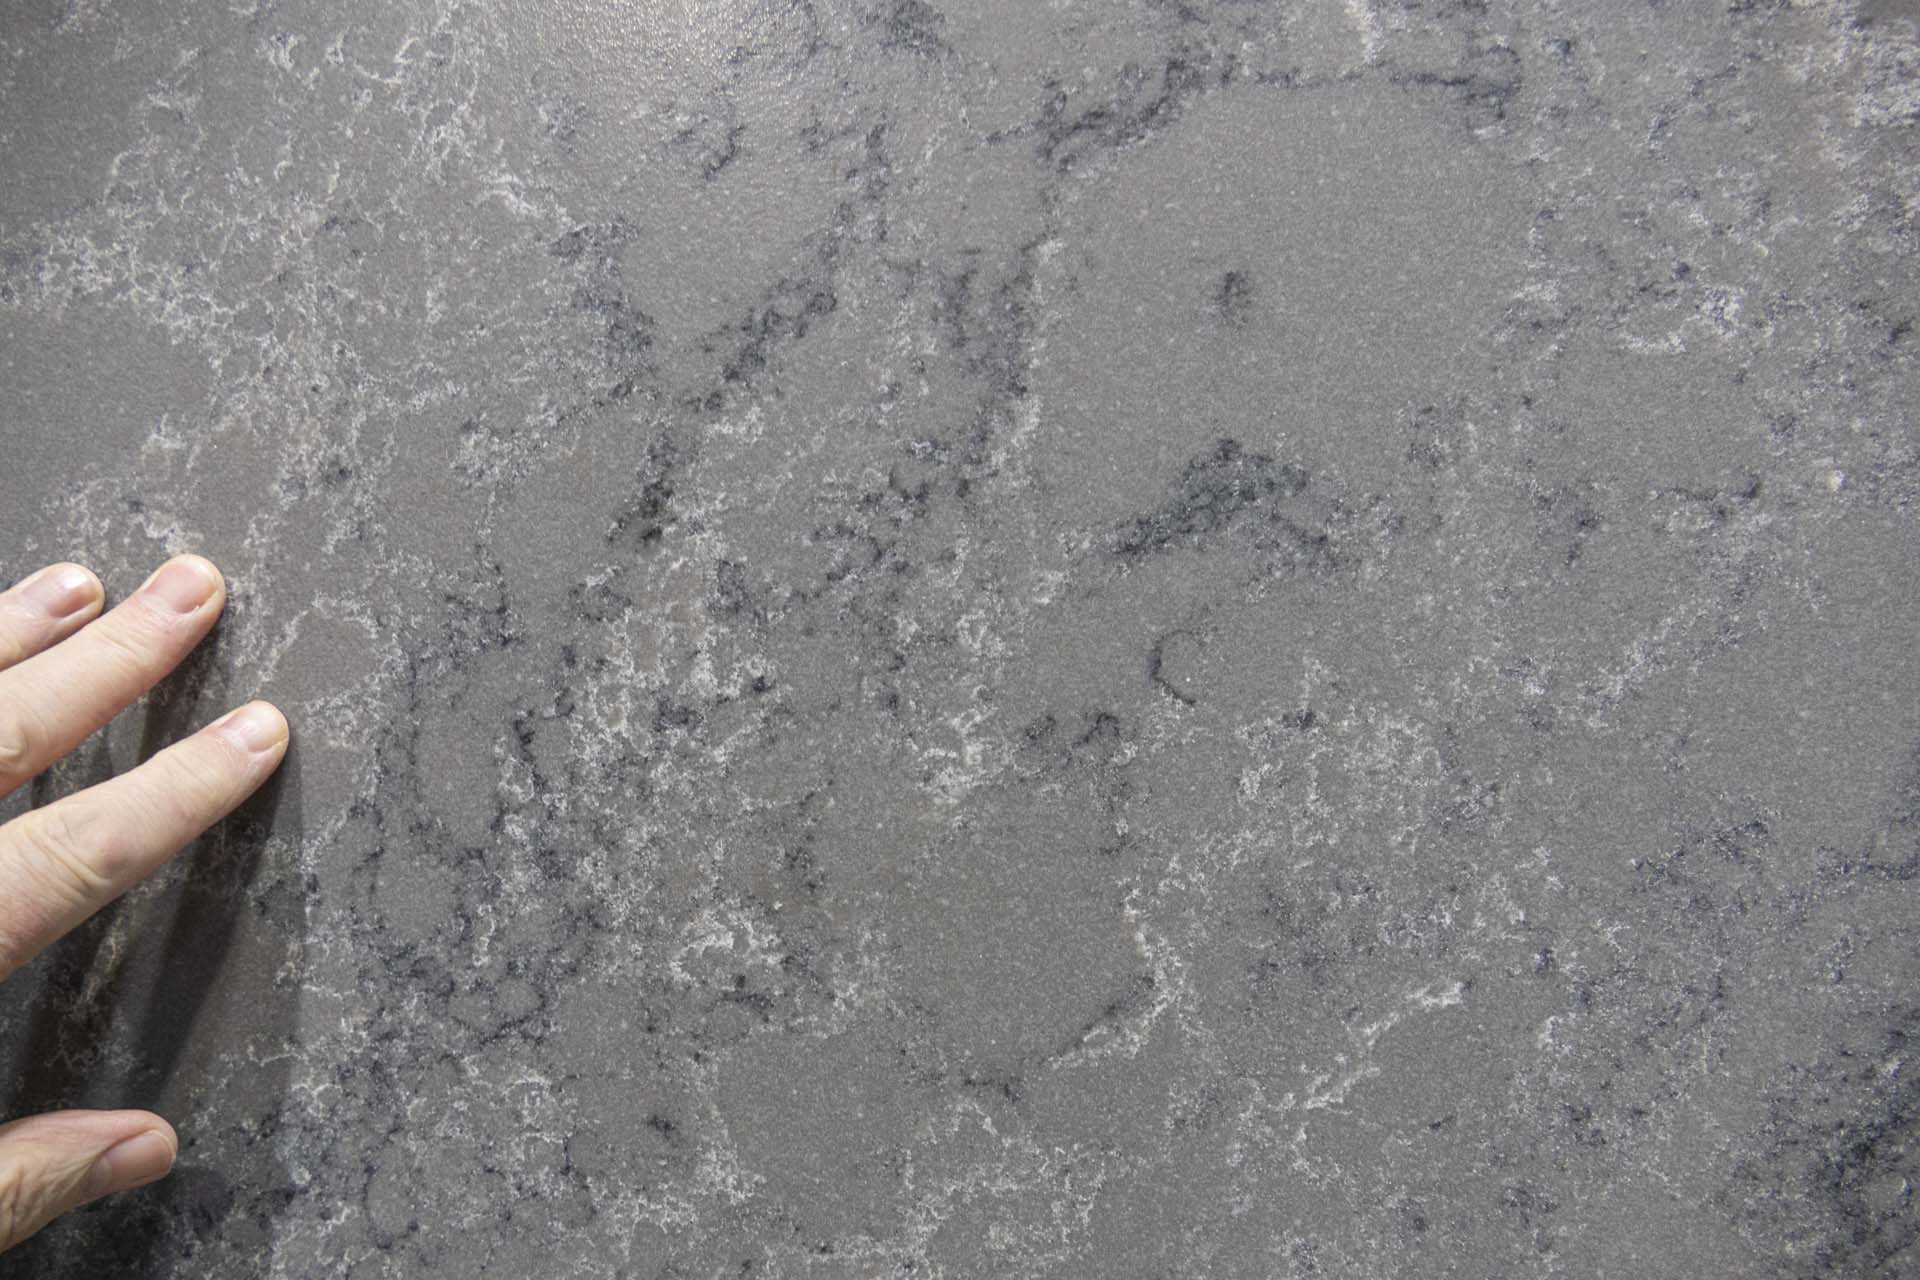 Bloomstone Storm Grey Quartz BL191203 37086 161806 a